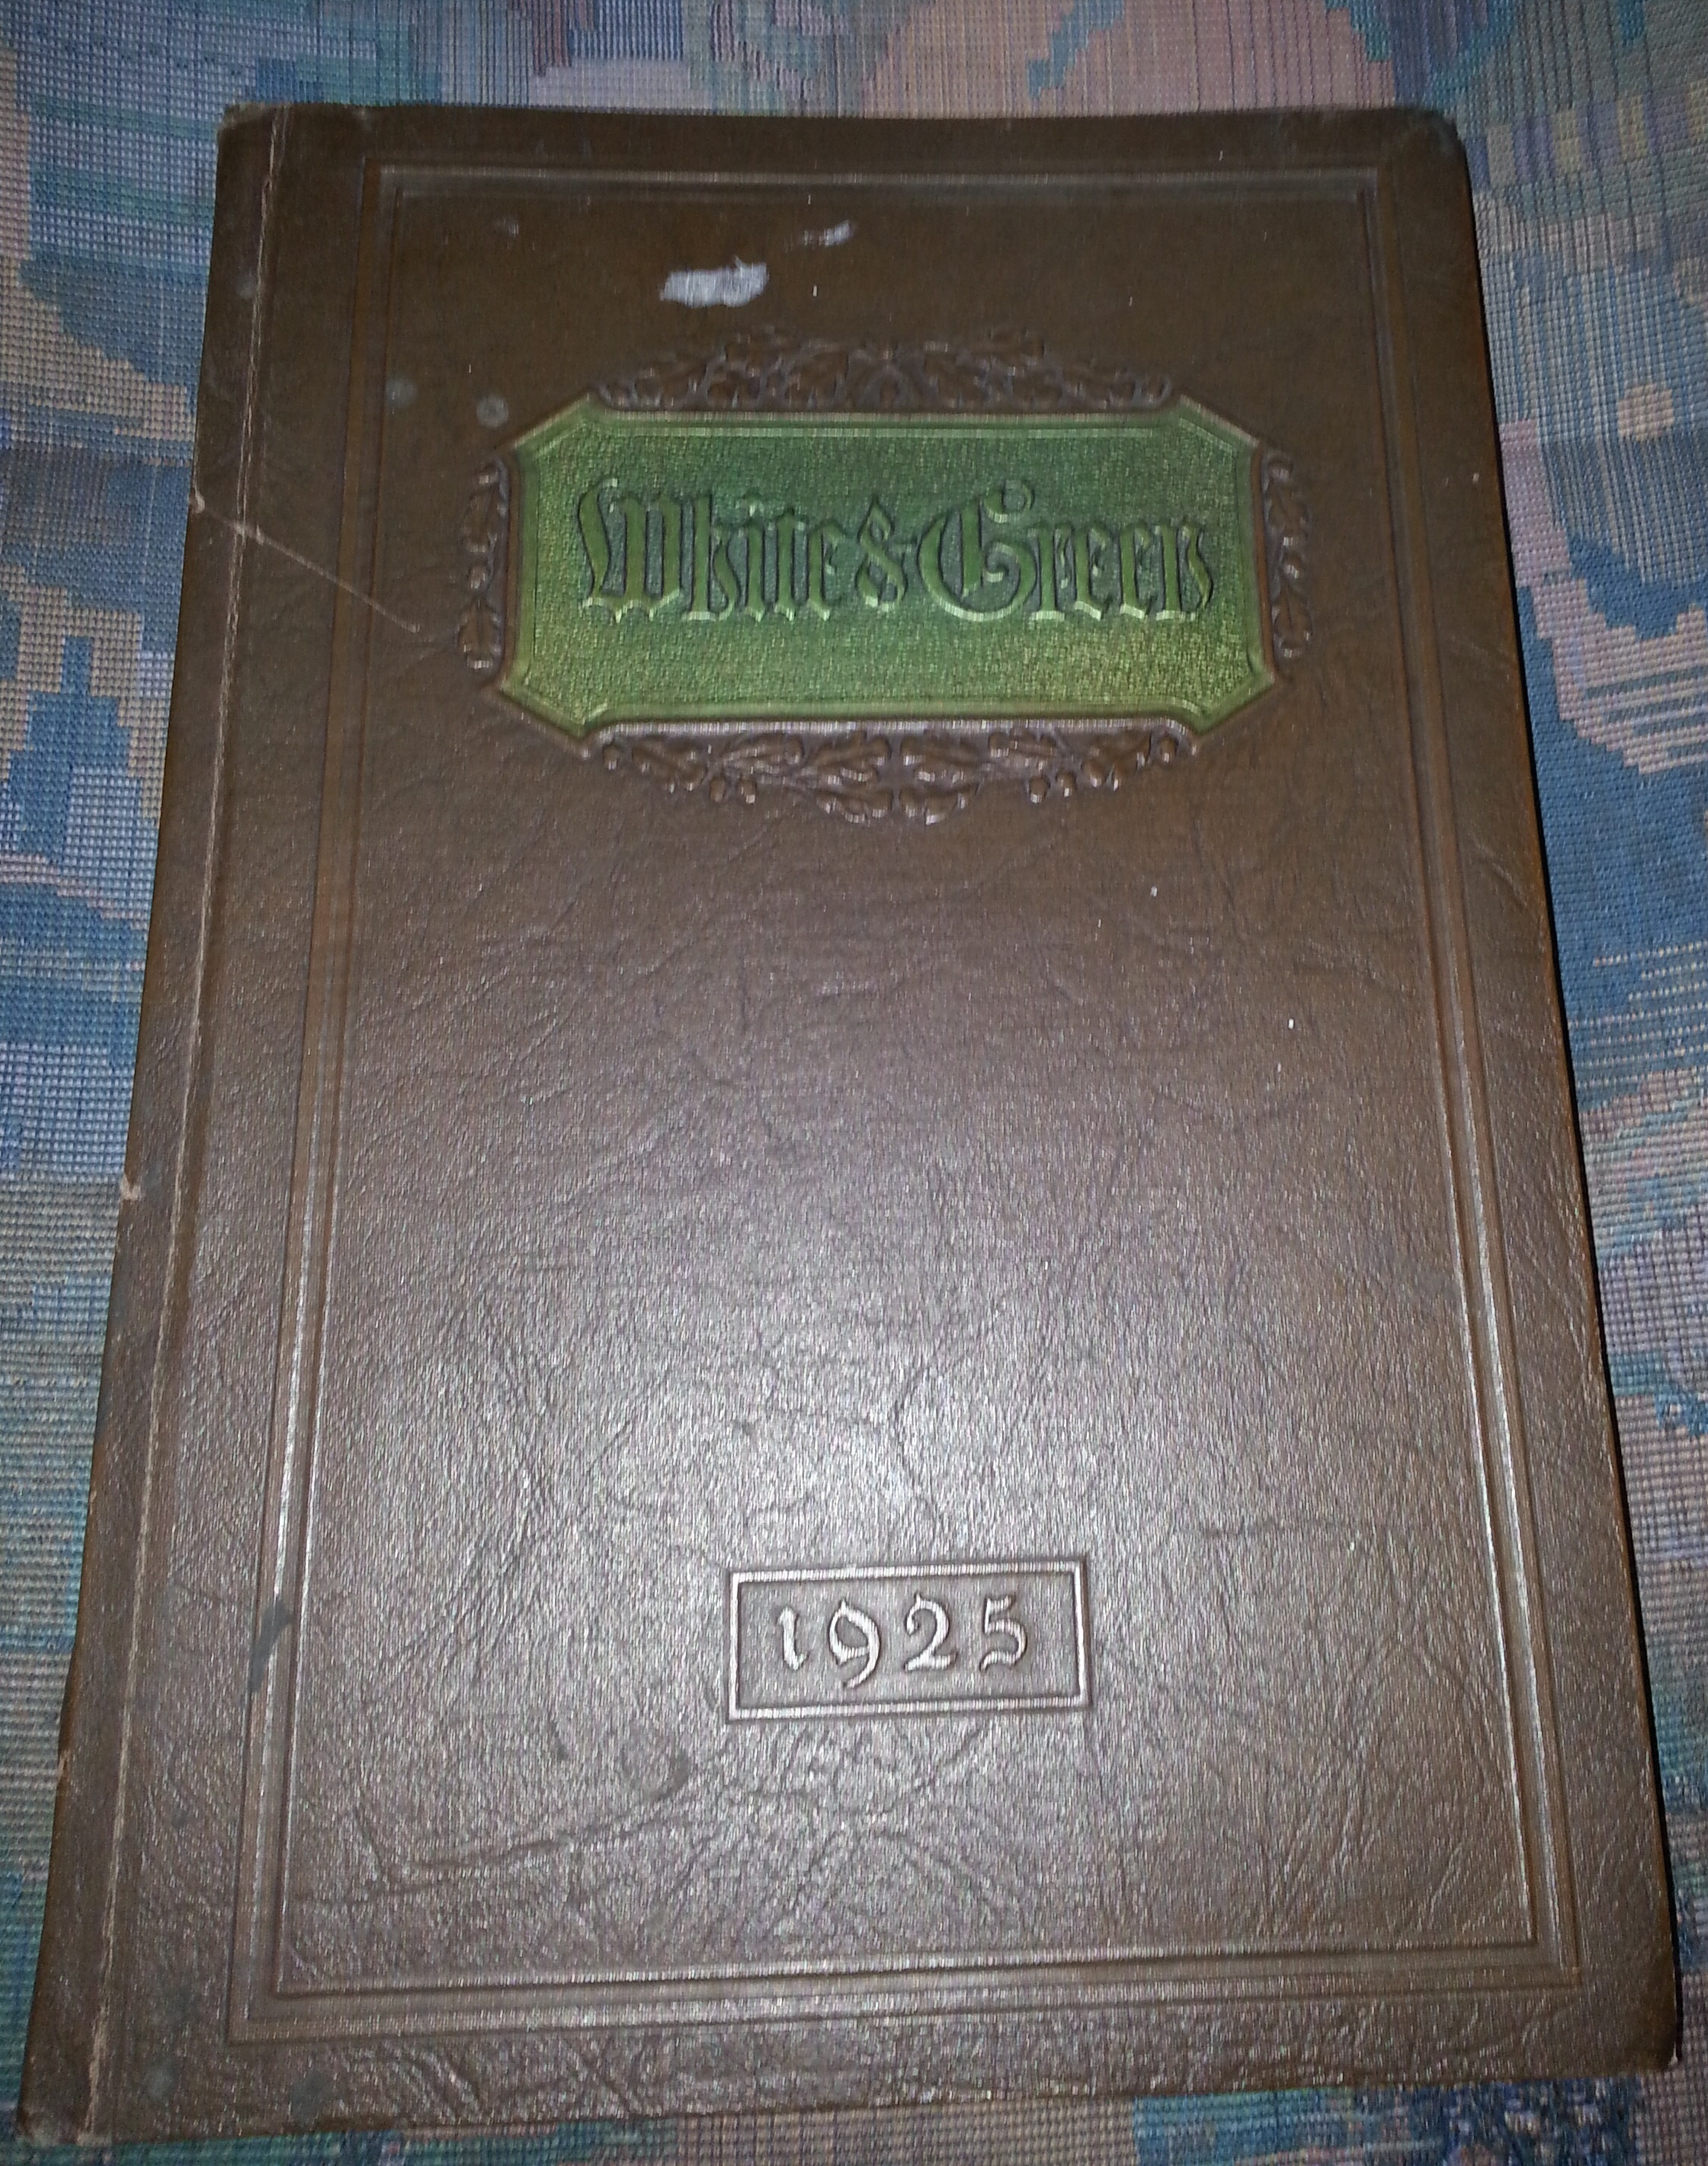 THE White and Green - Provo (Utah) High School Yearbook 1925